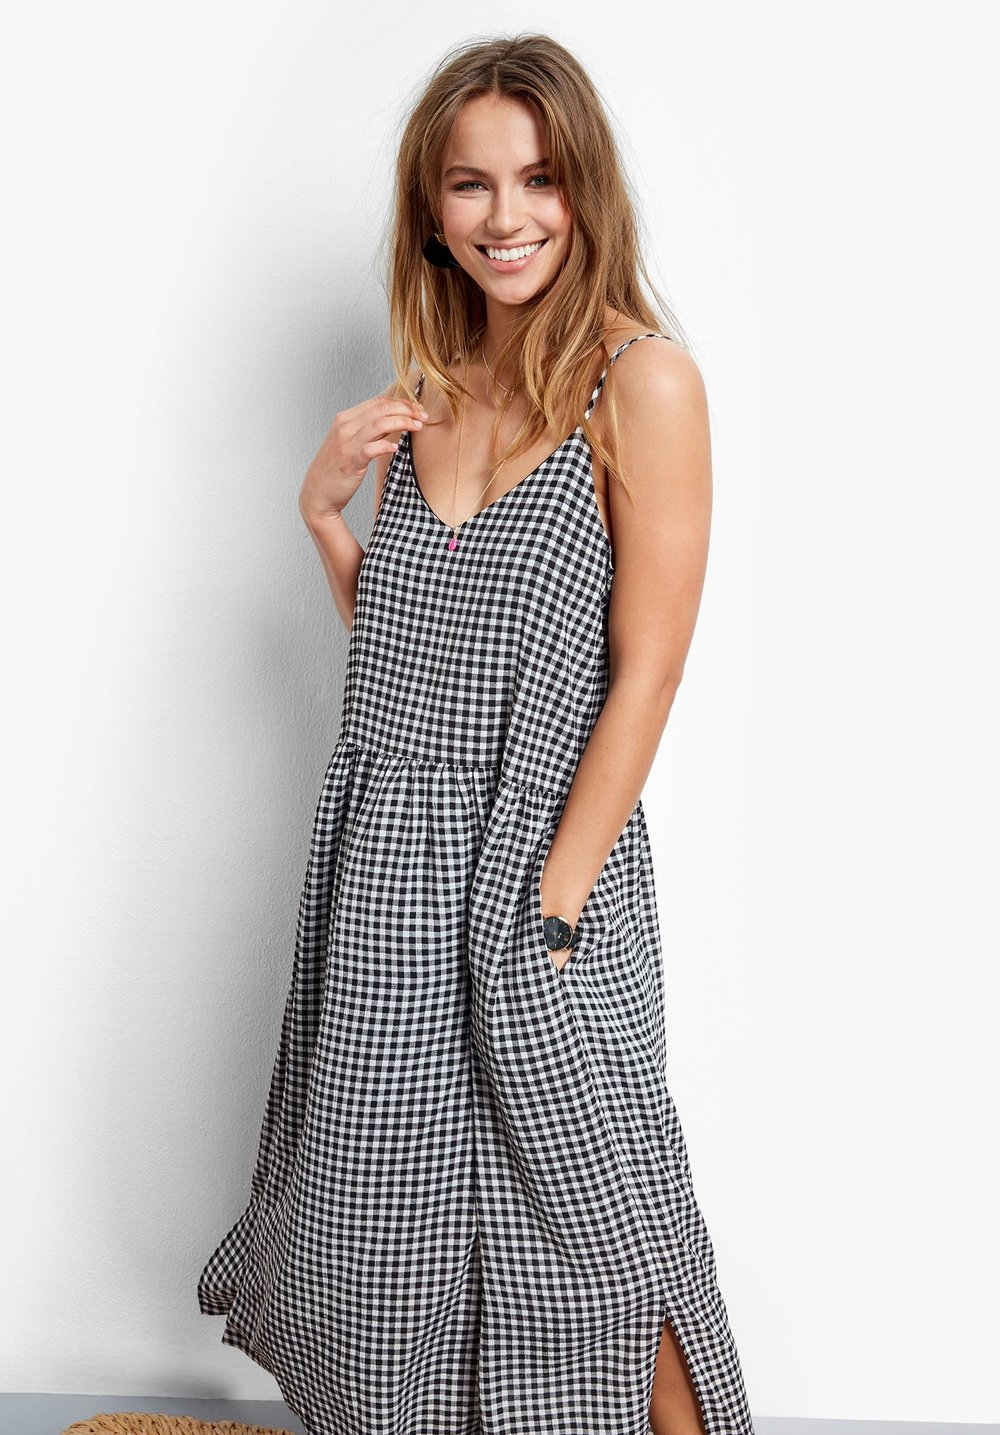 daywear - Grab this cool gingham dress to whisk you through the summer.